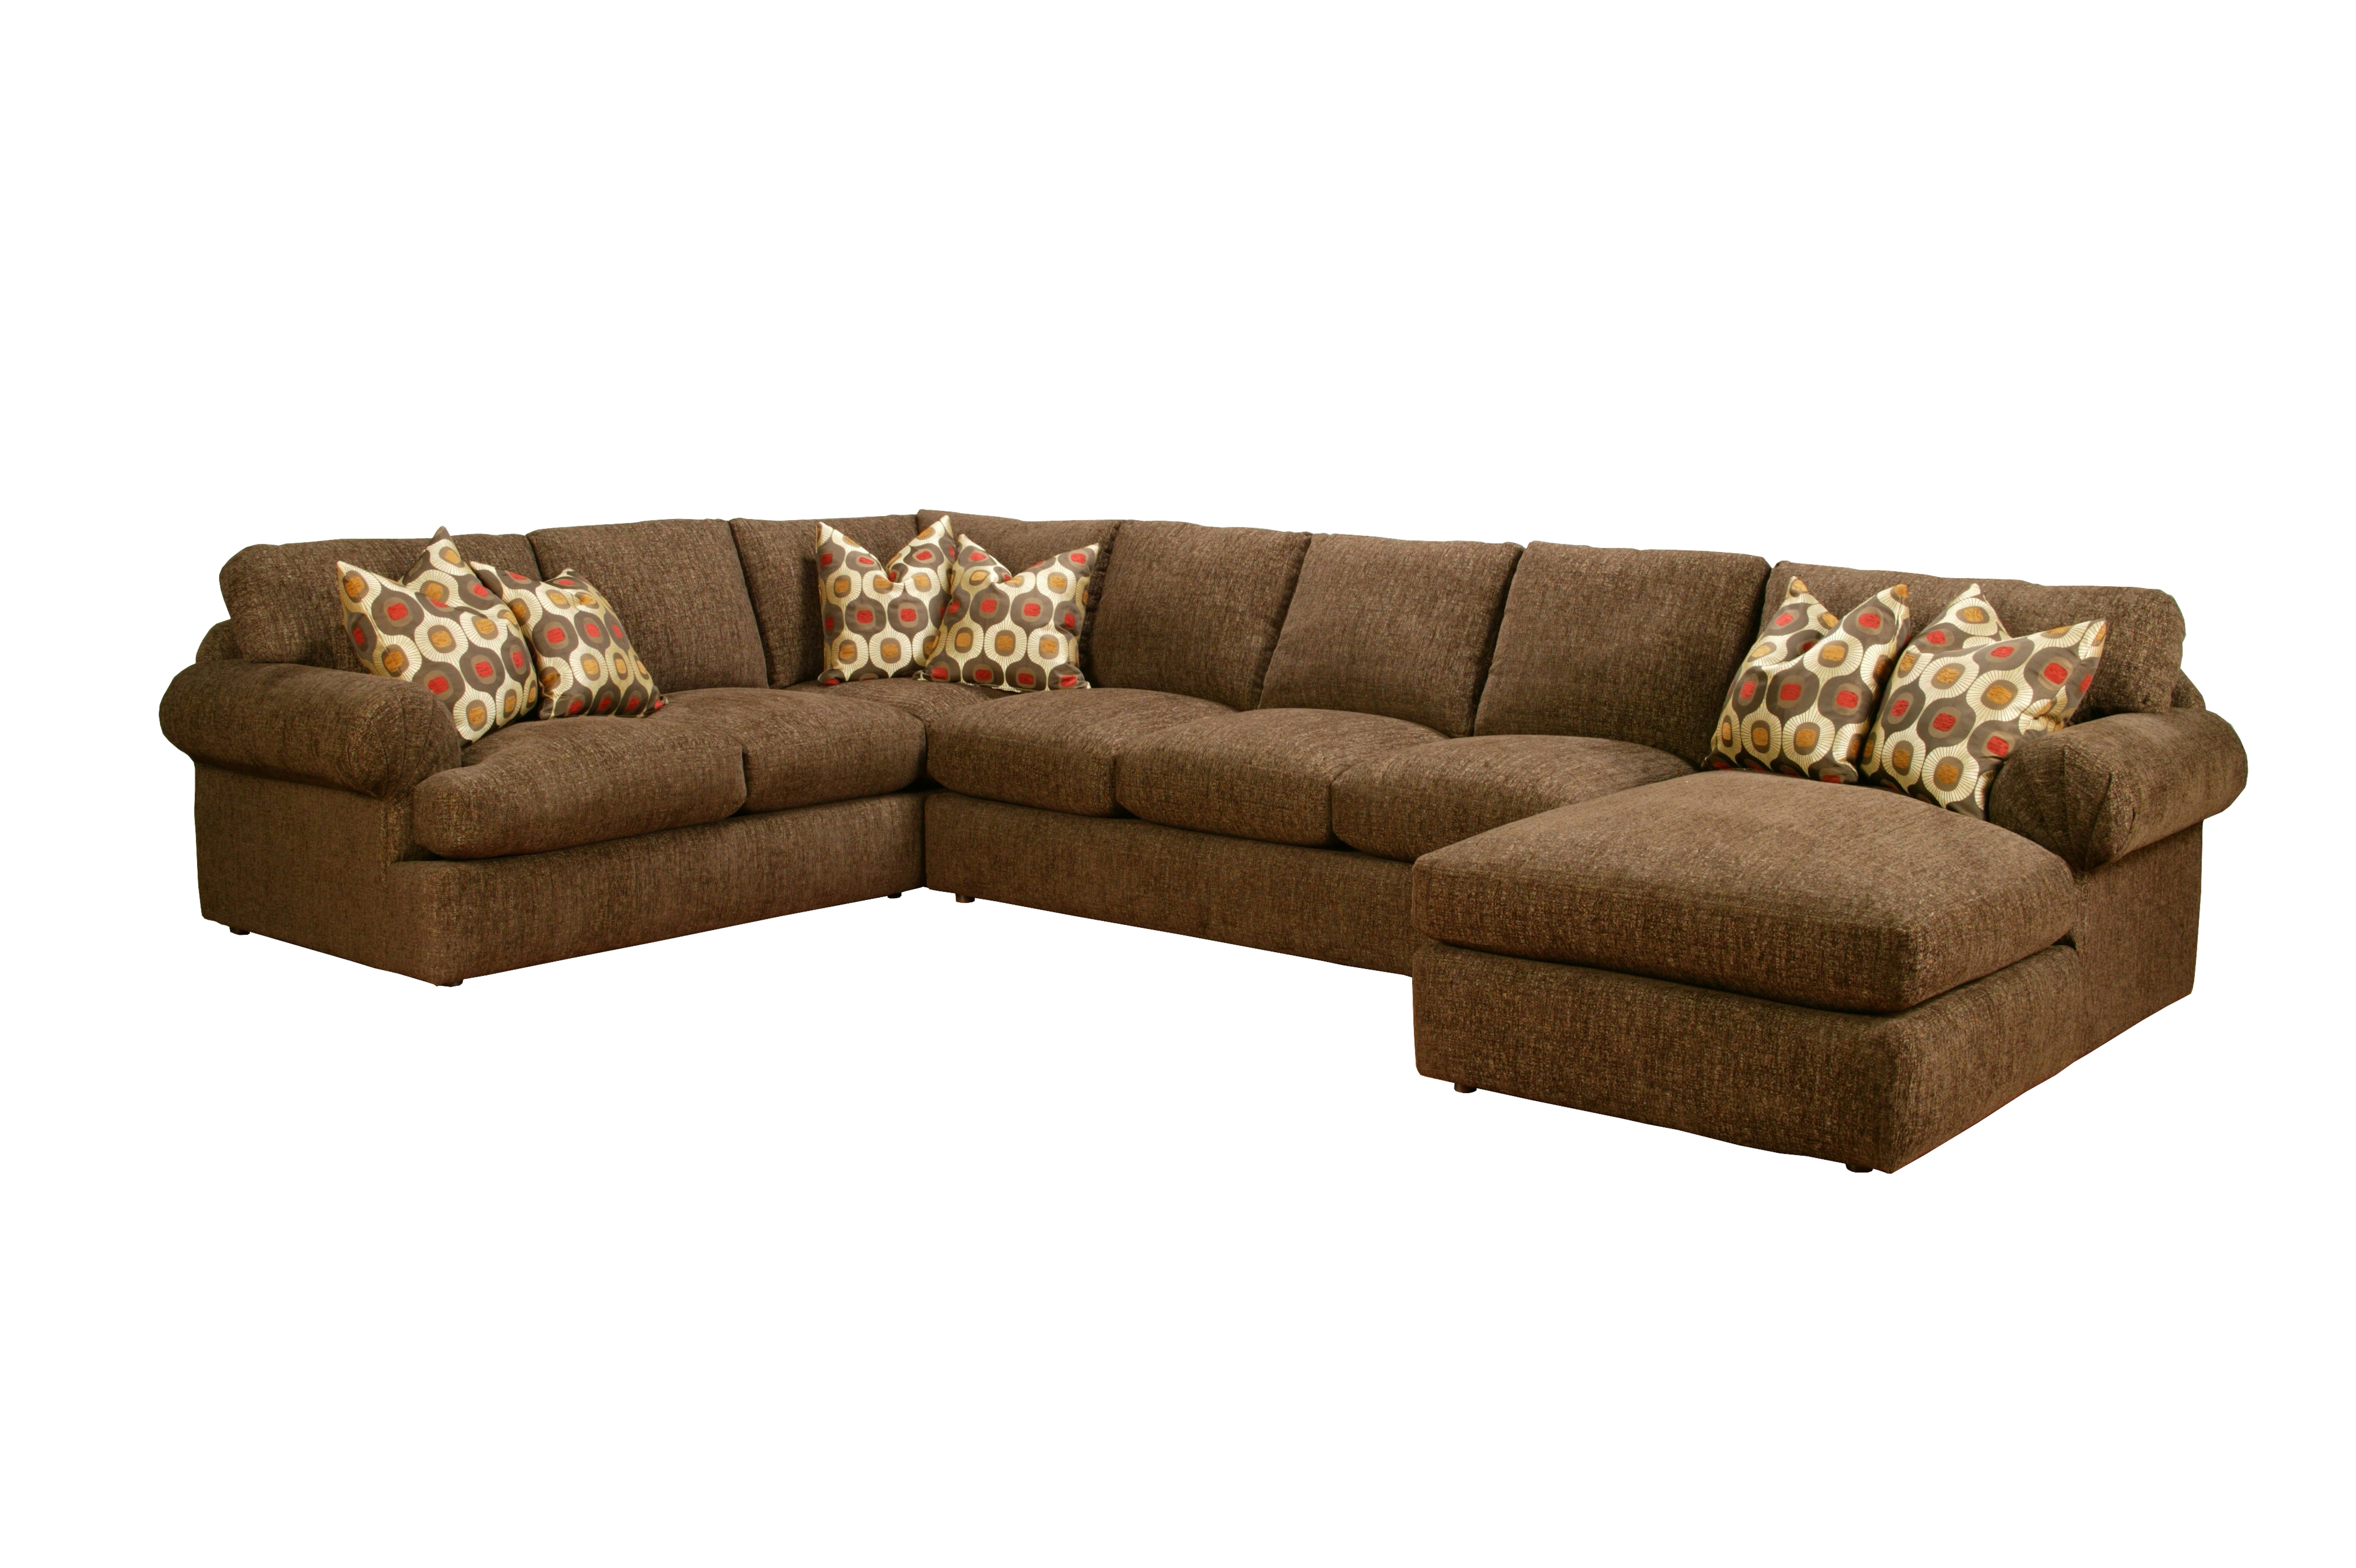 2019 Robert Michael Fifth Ave Sofa Sectionals Phoenix Arizona Regarding Phoenix Sectional Sofas (View 3 of 20)